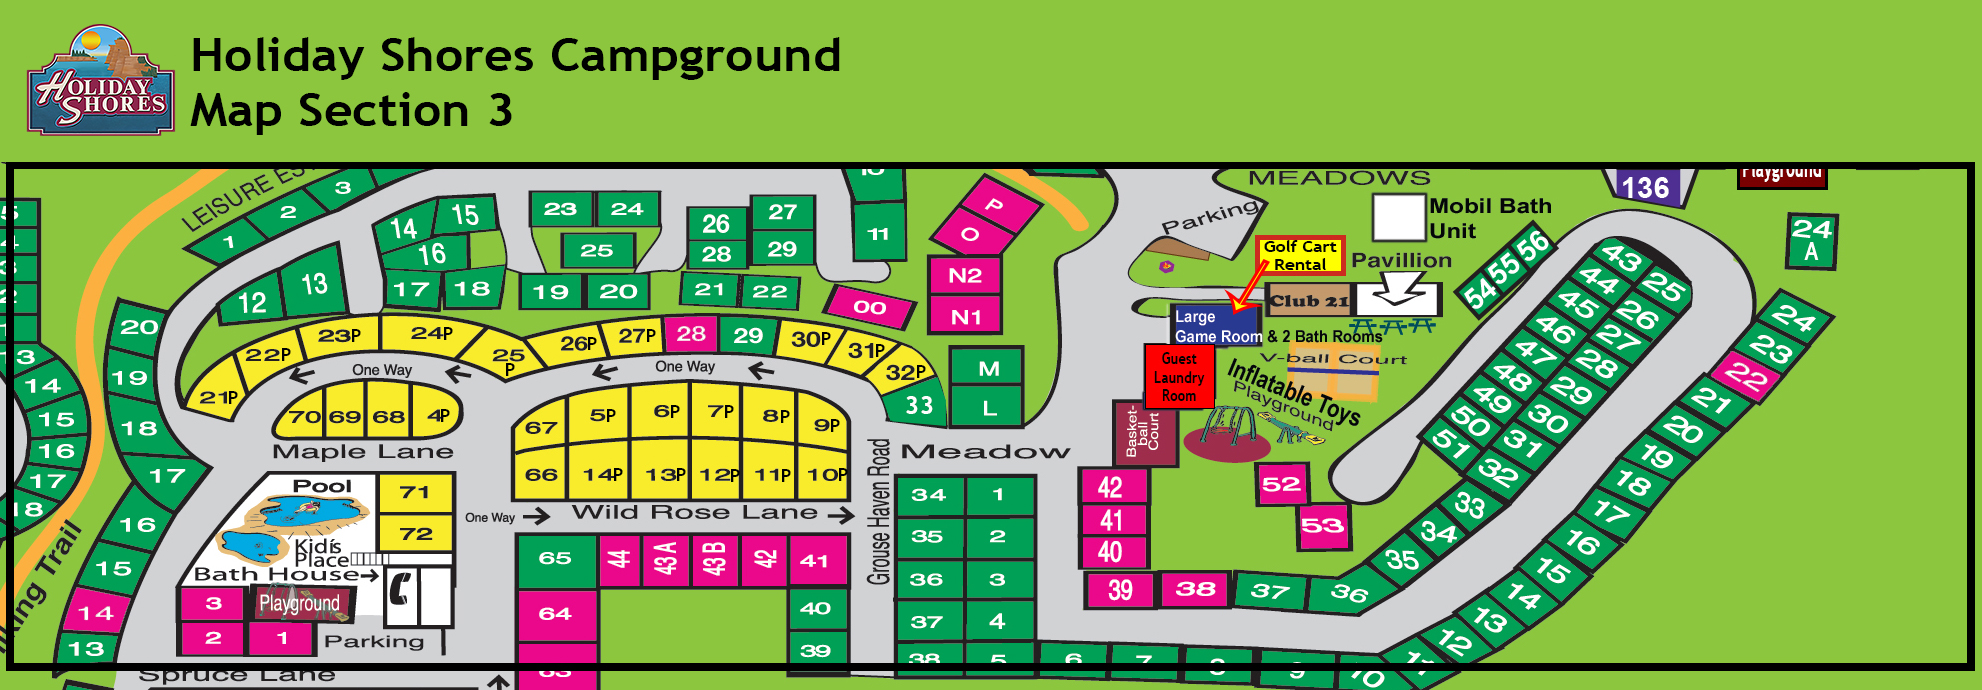 Resort Map Section 3